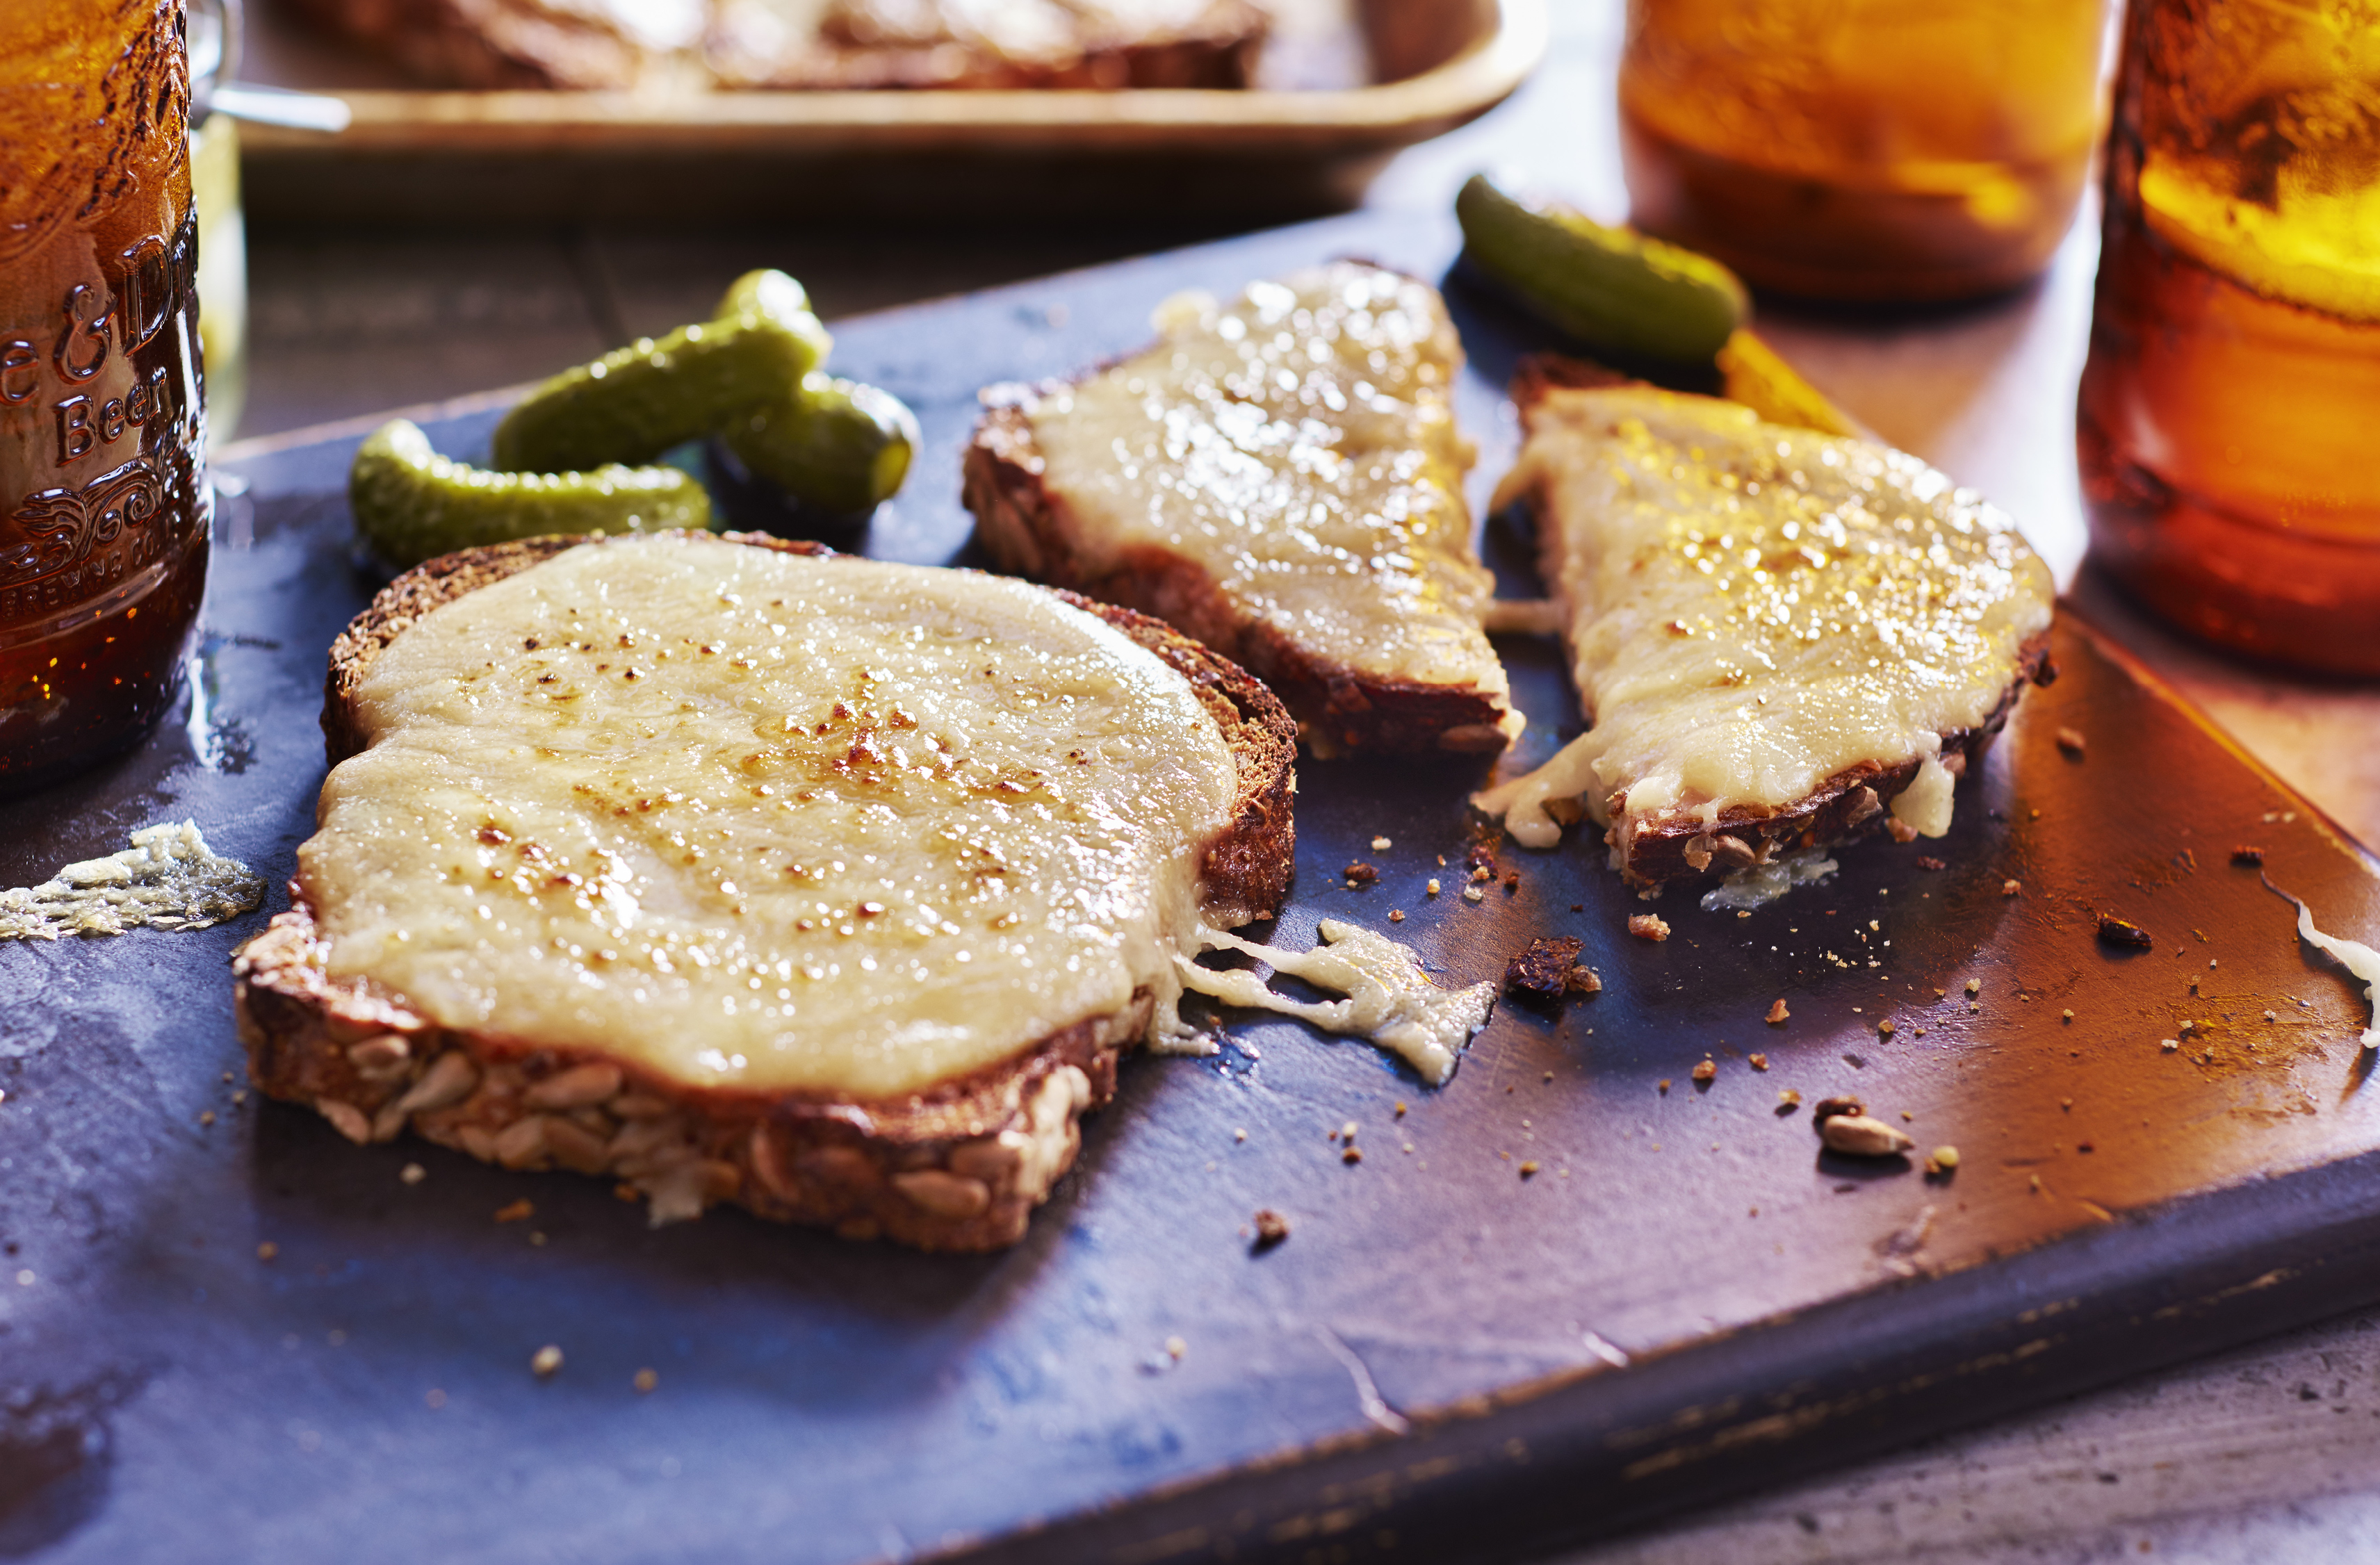 Slices of Welsh rarebit, comprised of toast covered in spiced cheese sauce